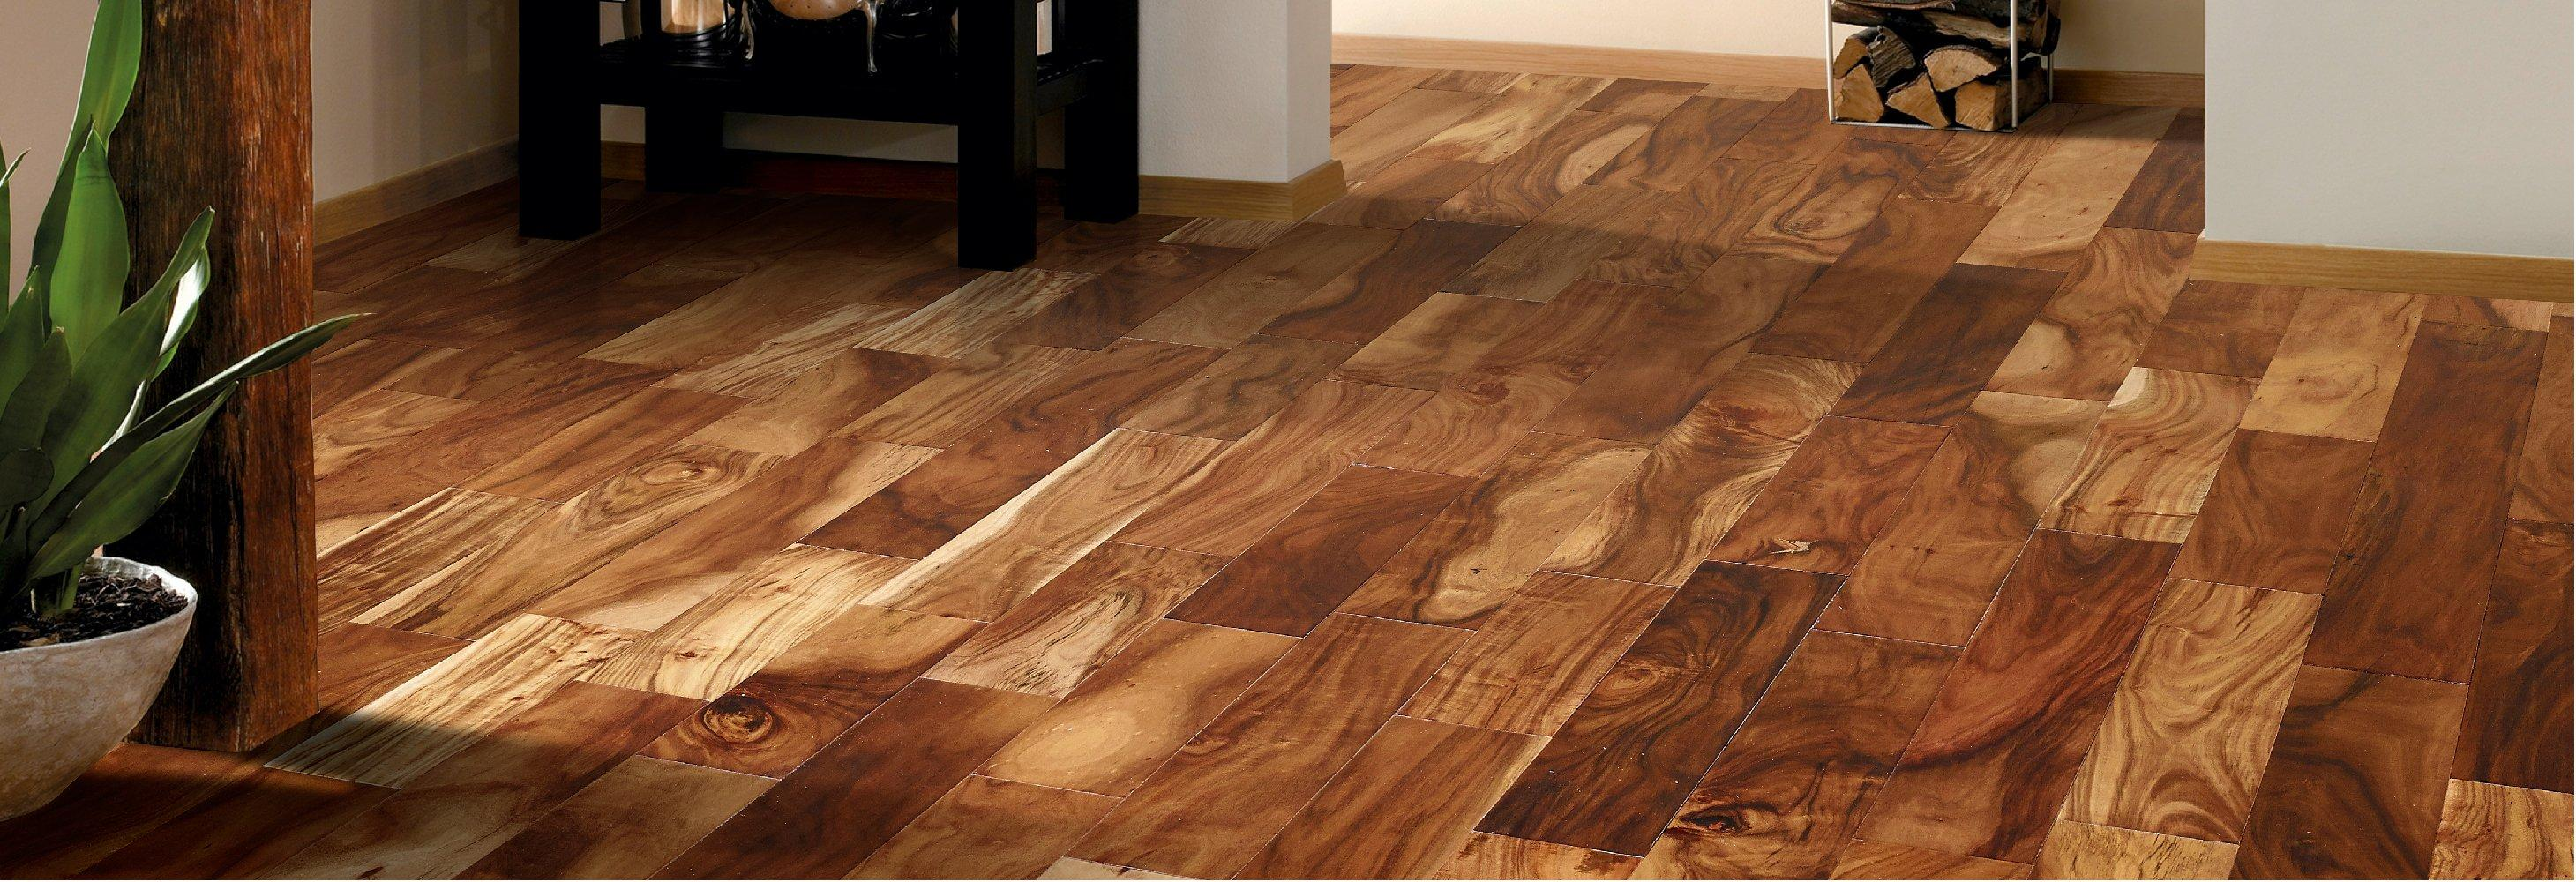 Engineered wood flooring engineered hardwood flooring HKRNFBO